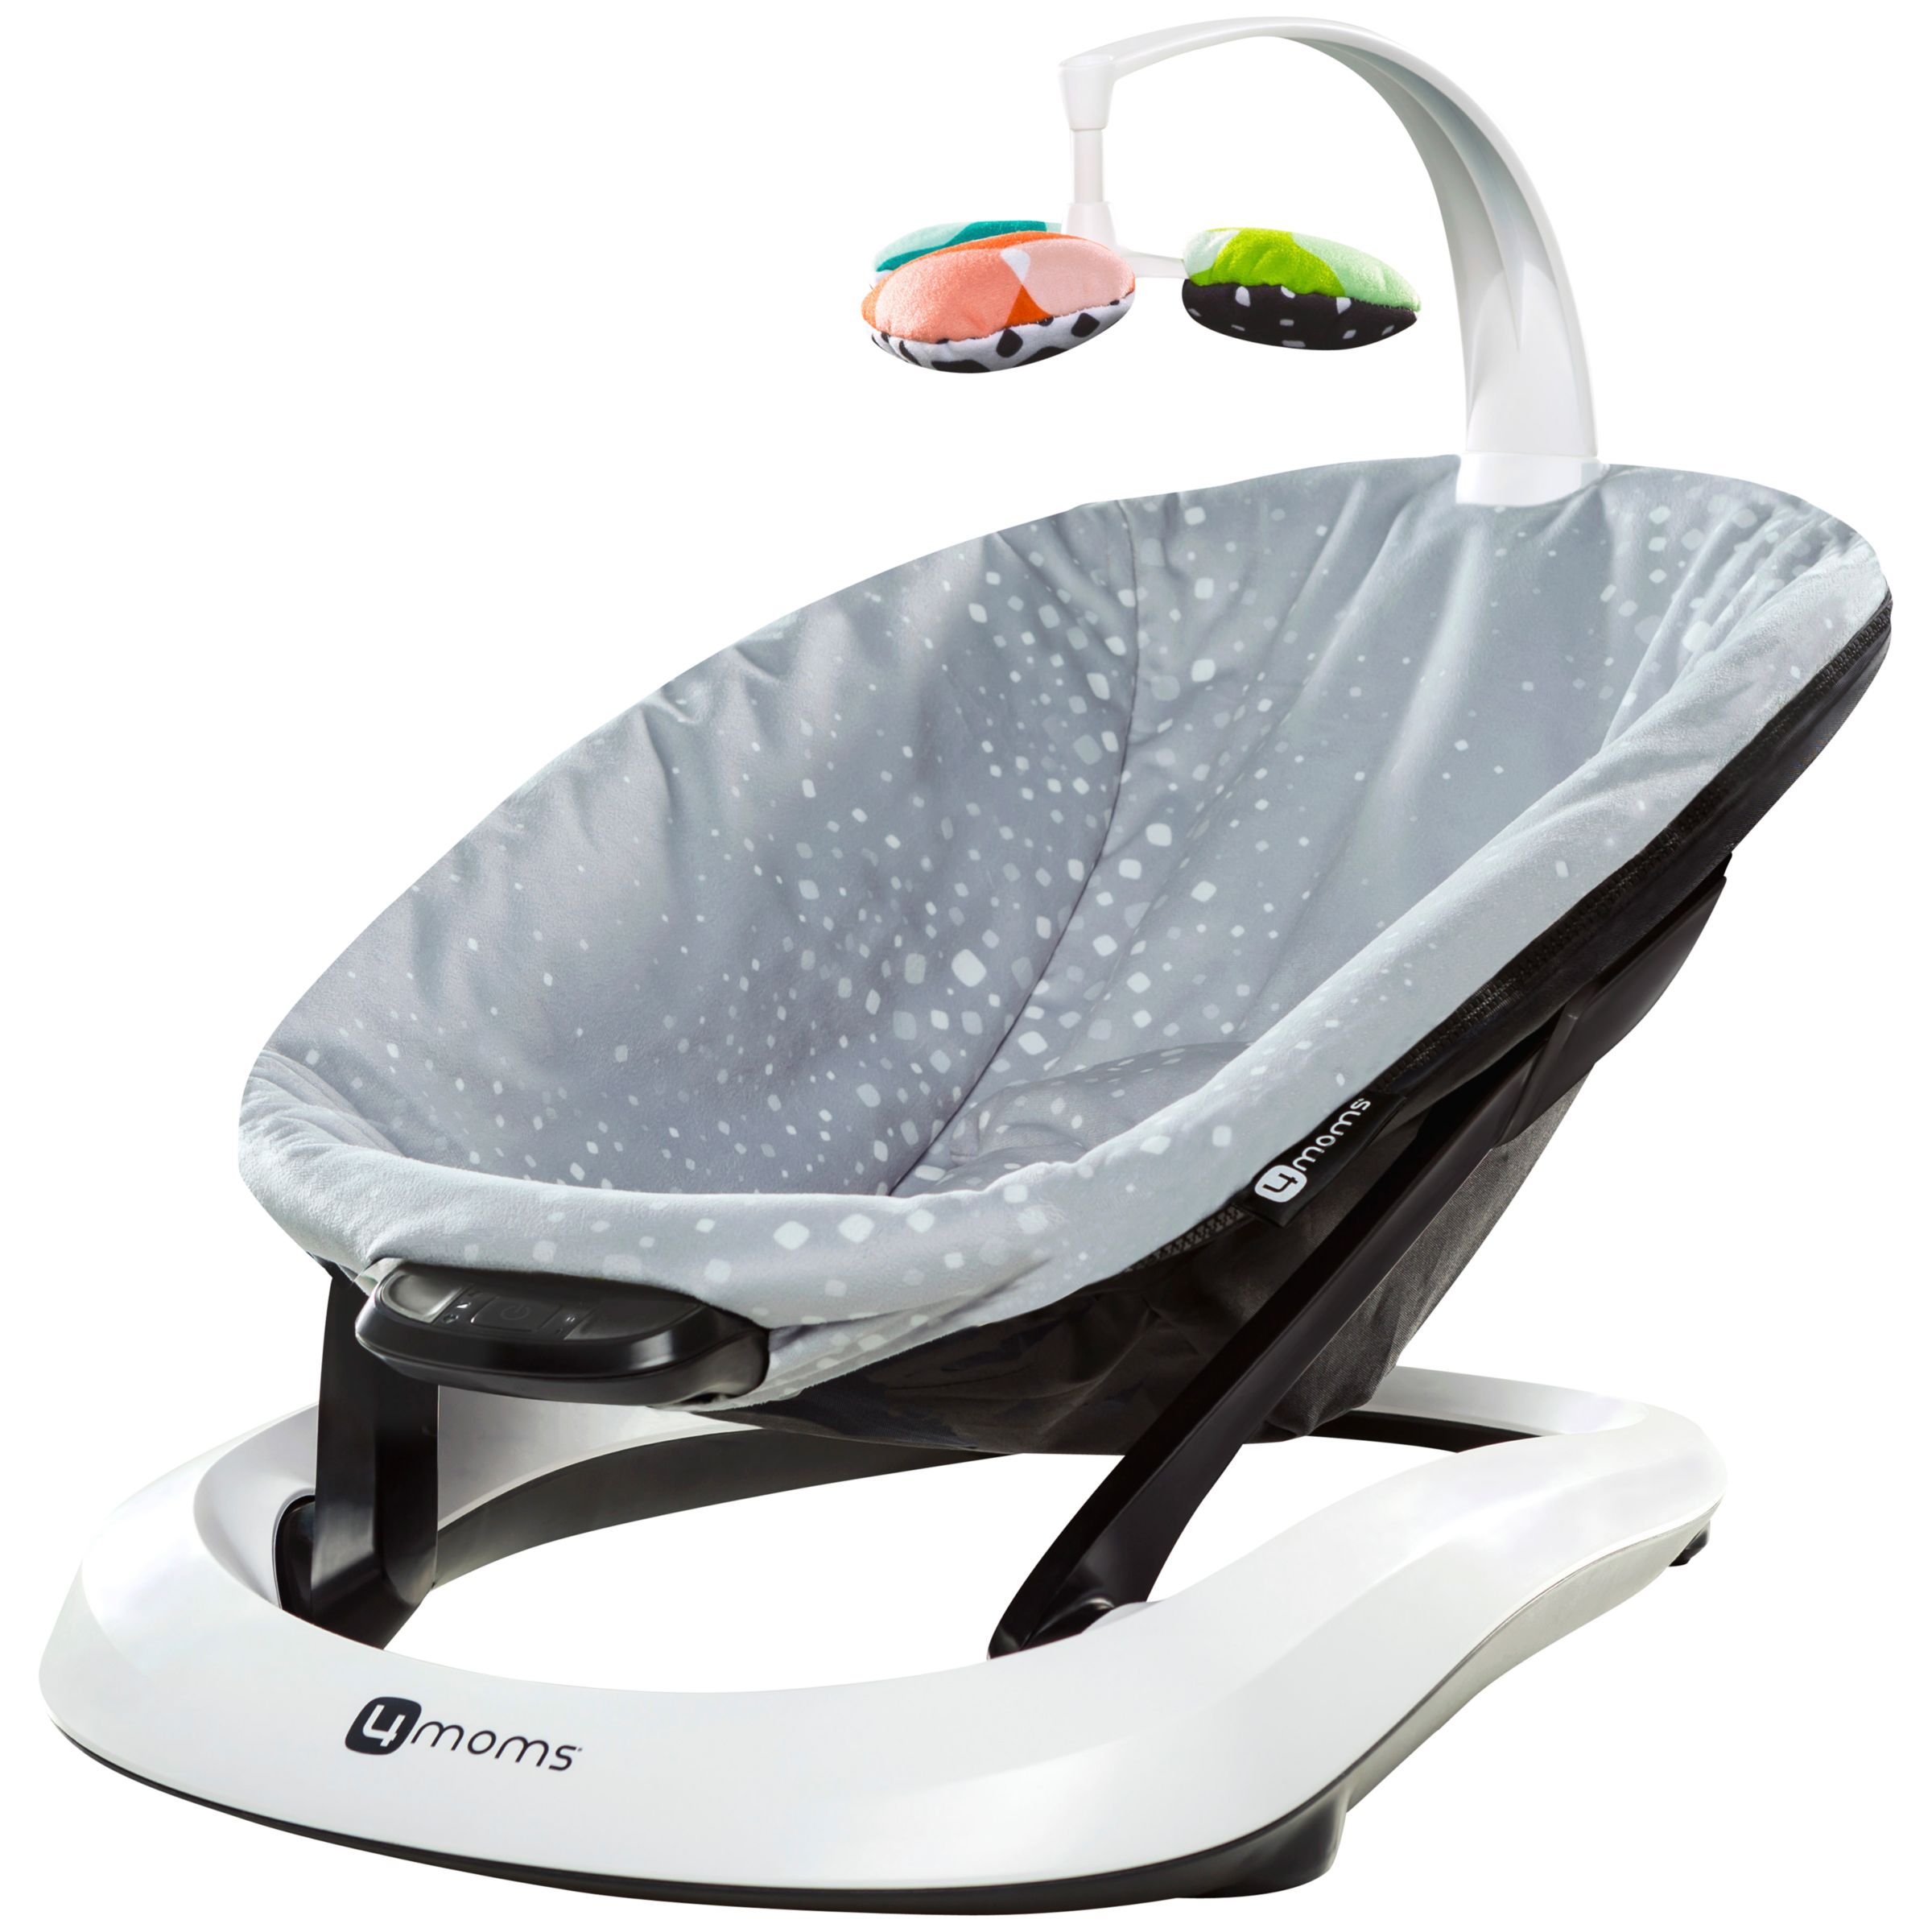 4Moms 4Moms BounceRoo Baby Bouncer, Silver Plush